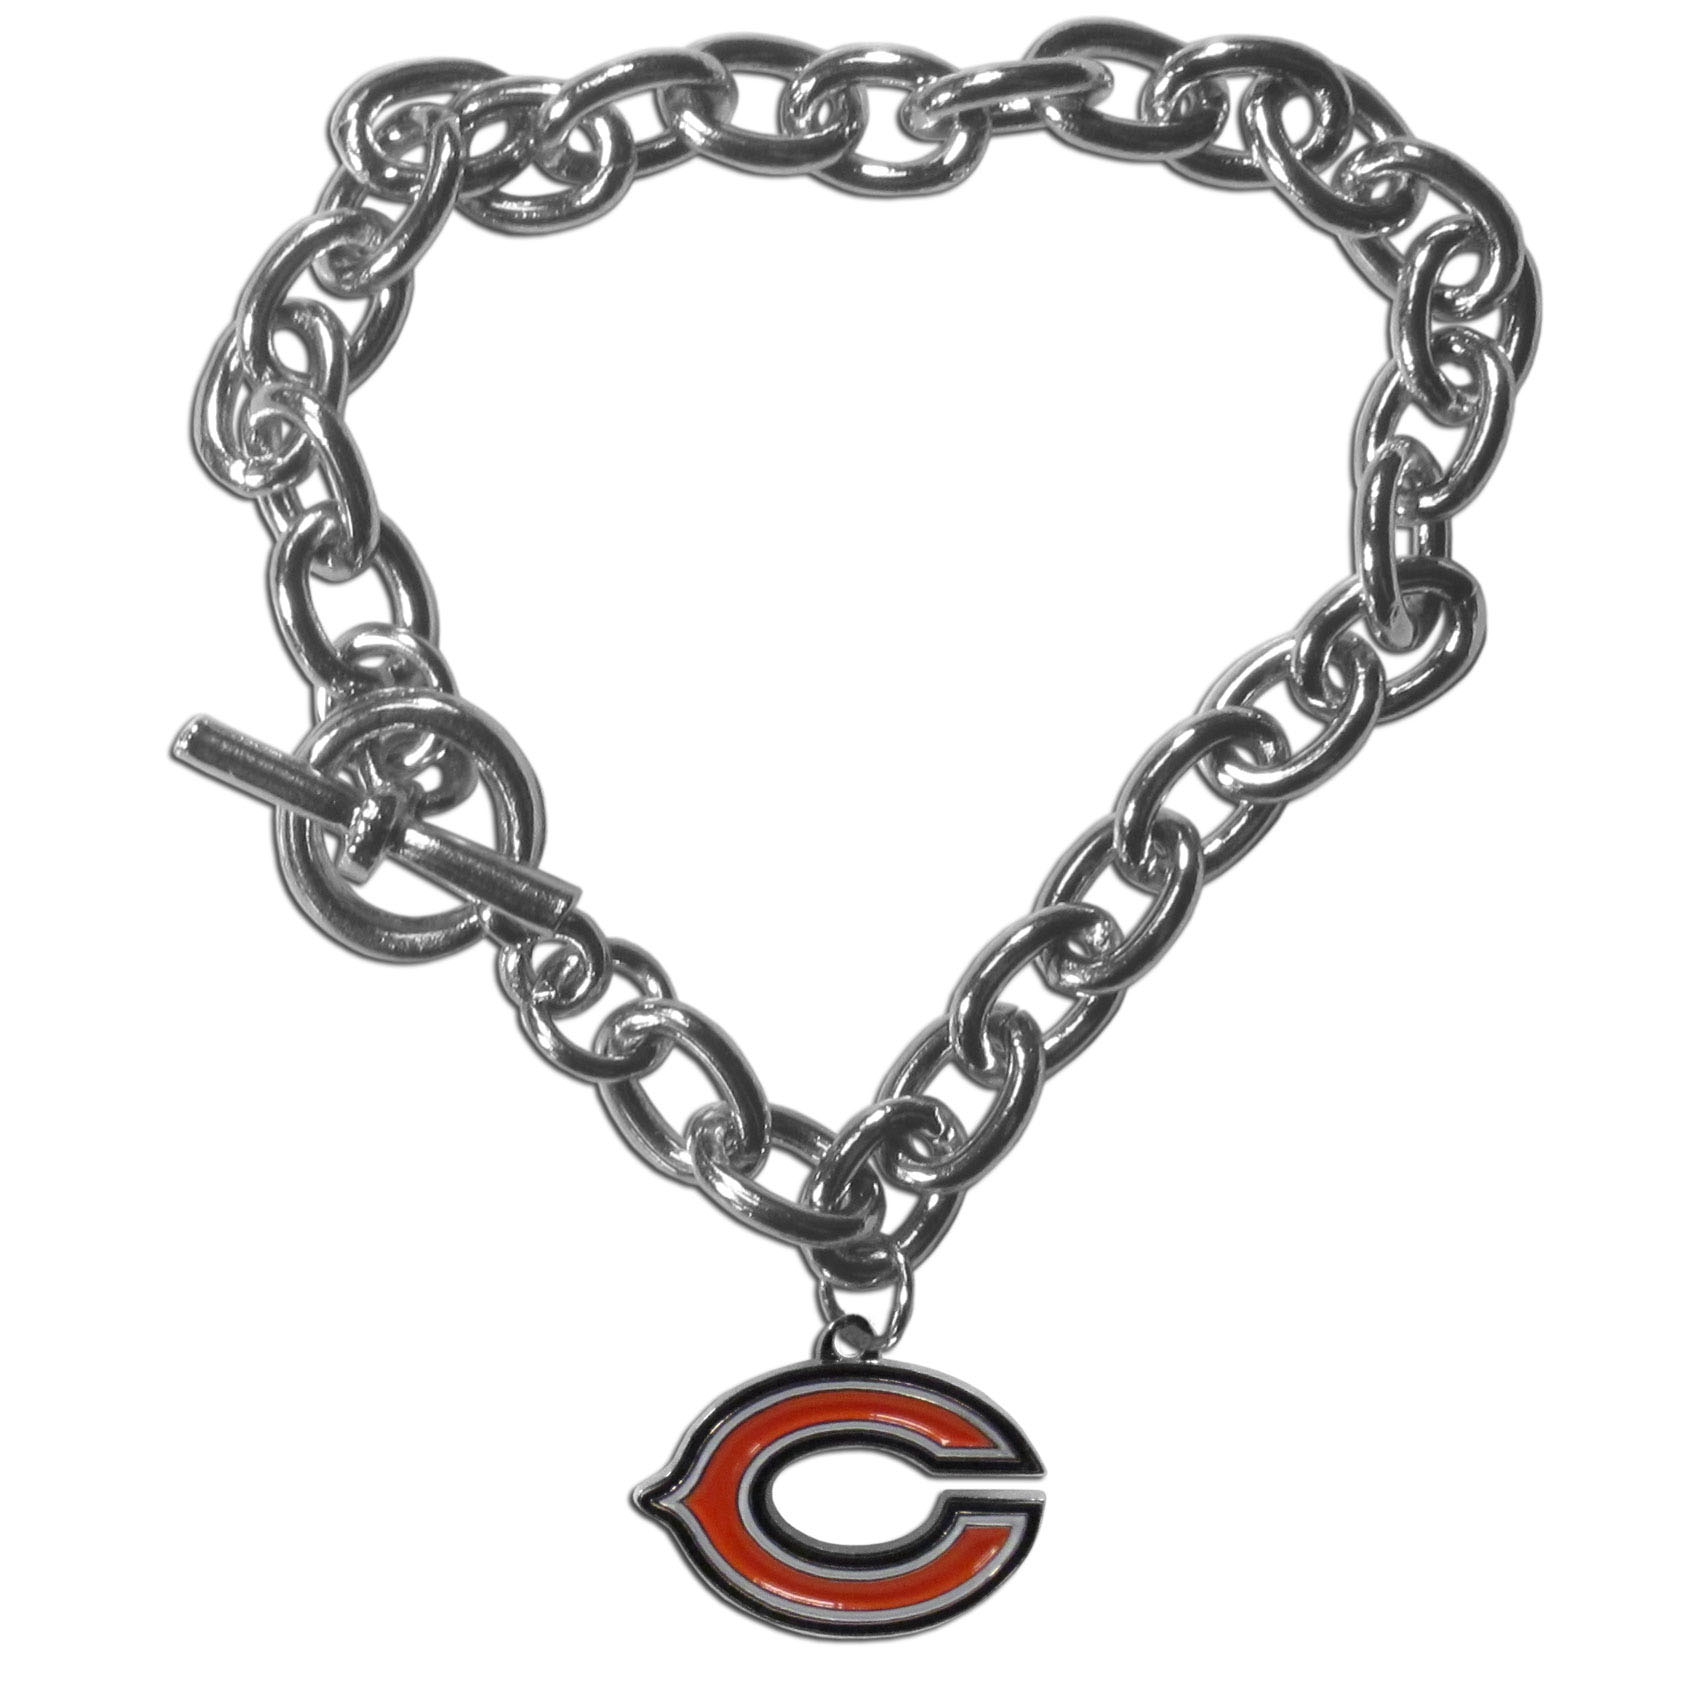 Chicago Bears Charm Chain Bracelet - Our classic single charm bracelet is a great way to show off your team pride! The 7.5 inch large link chain features a high polish Chicago Bears charm and features a toggle clasp which makes it super easy to take on and off.